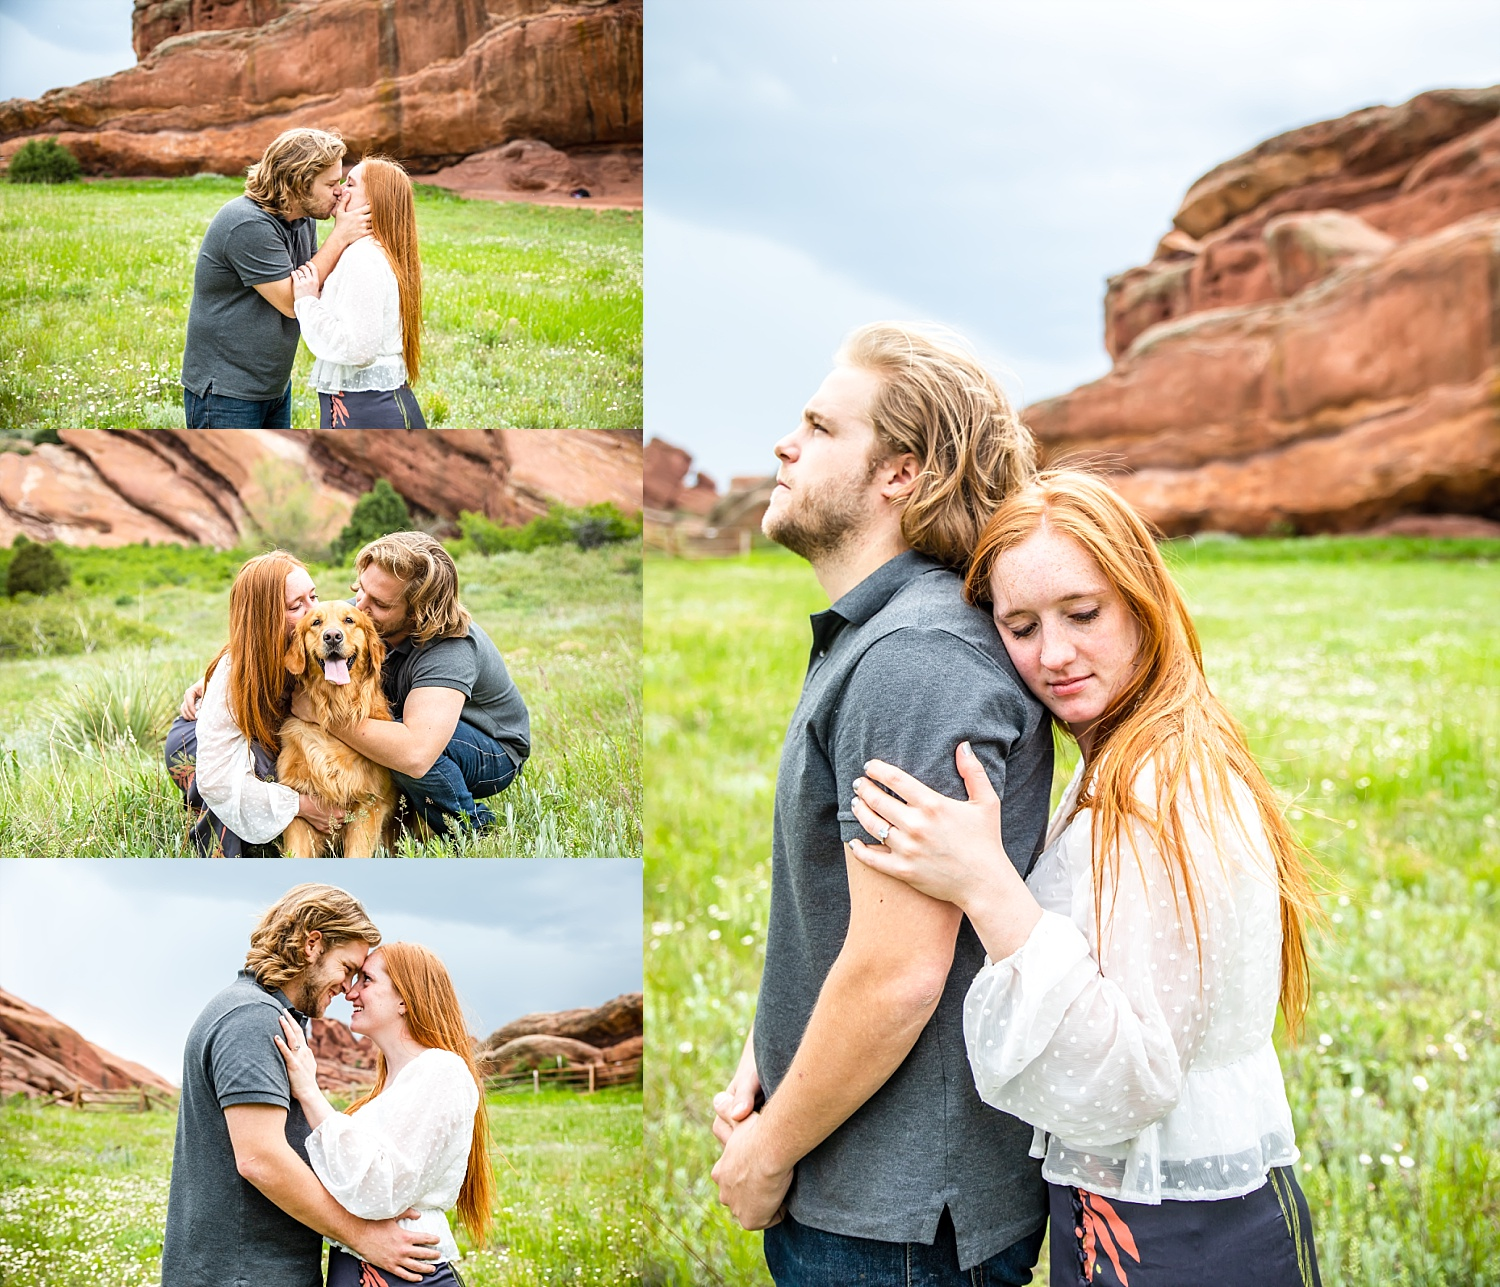 Hannah-cessna-photography-cleveland-ohio-wedding-photograper-Red-Rock-Ampitheatrer-Engagement-Denver-Colorado_0139.jpg